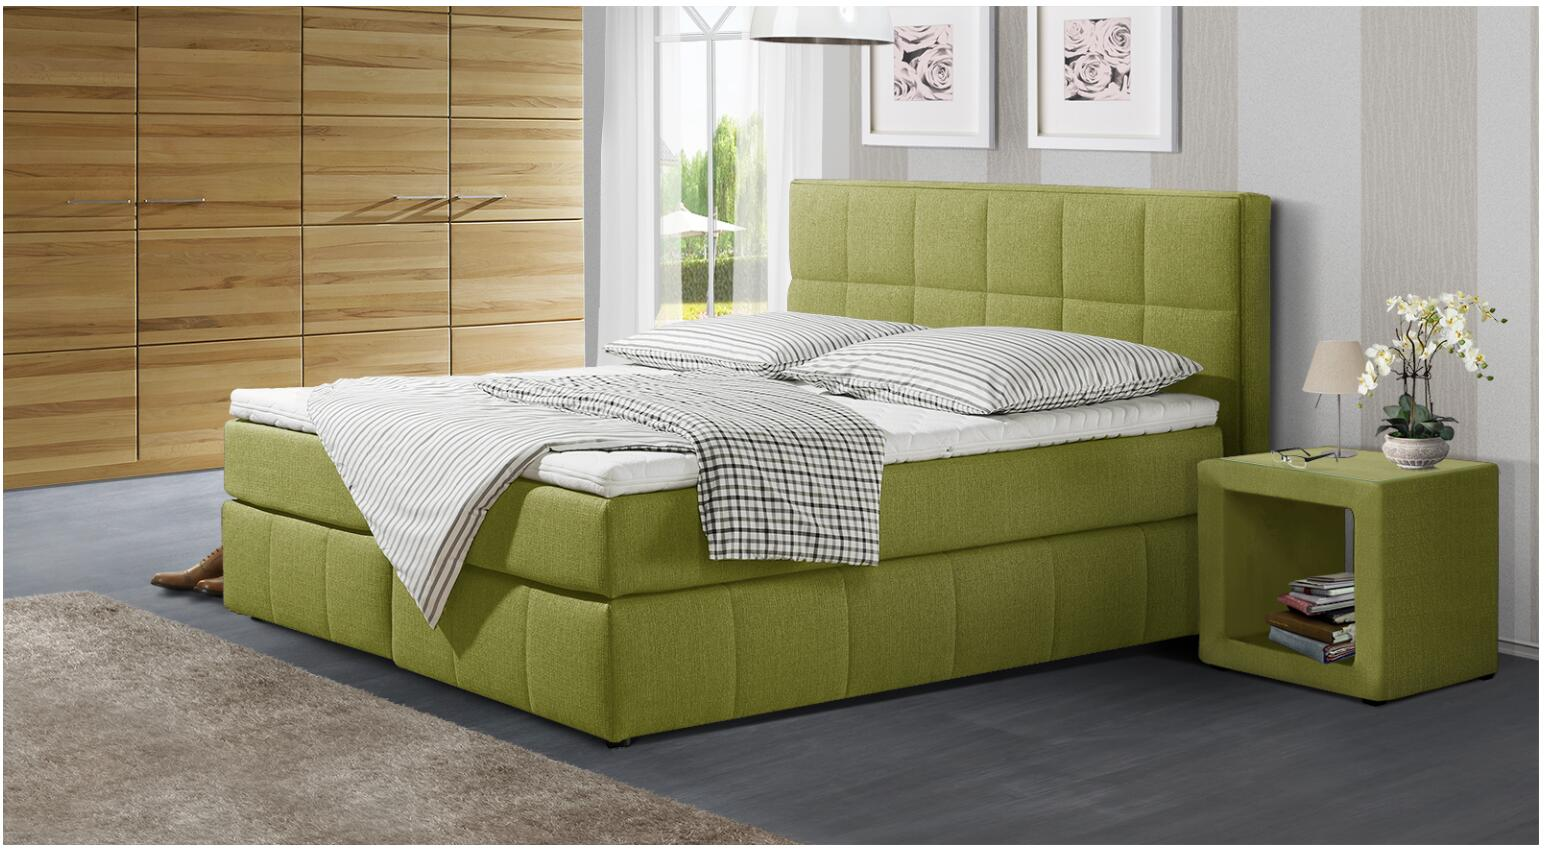 What Colors Do I Choose in the Bedroom? Part I